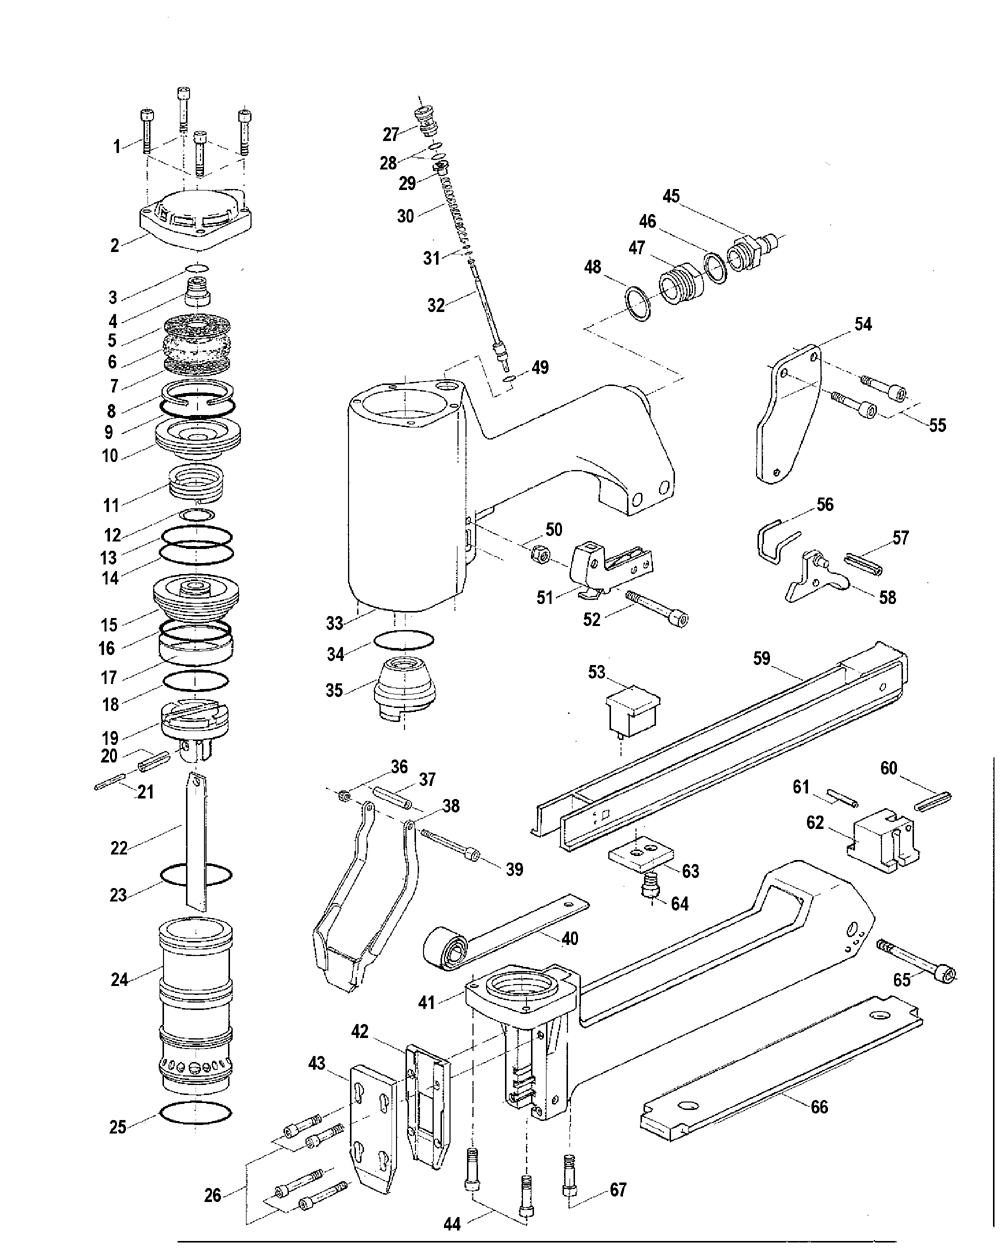 Pneumatic Counter Schematic Part : Buy bostitch w replacement tool parts